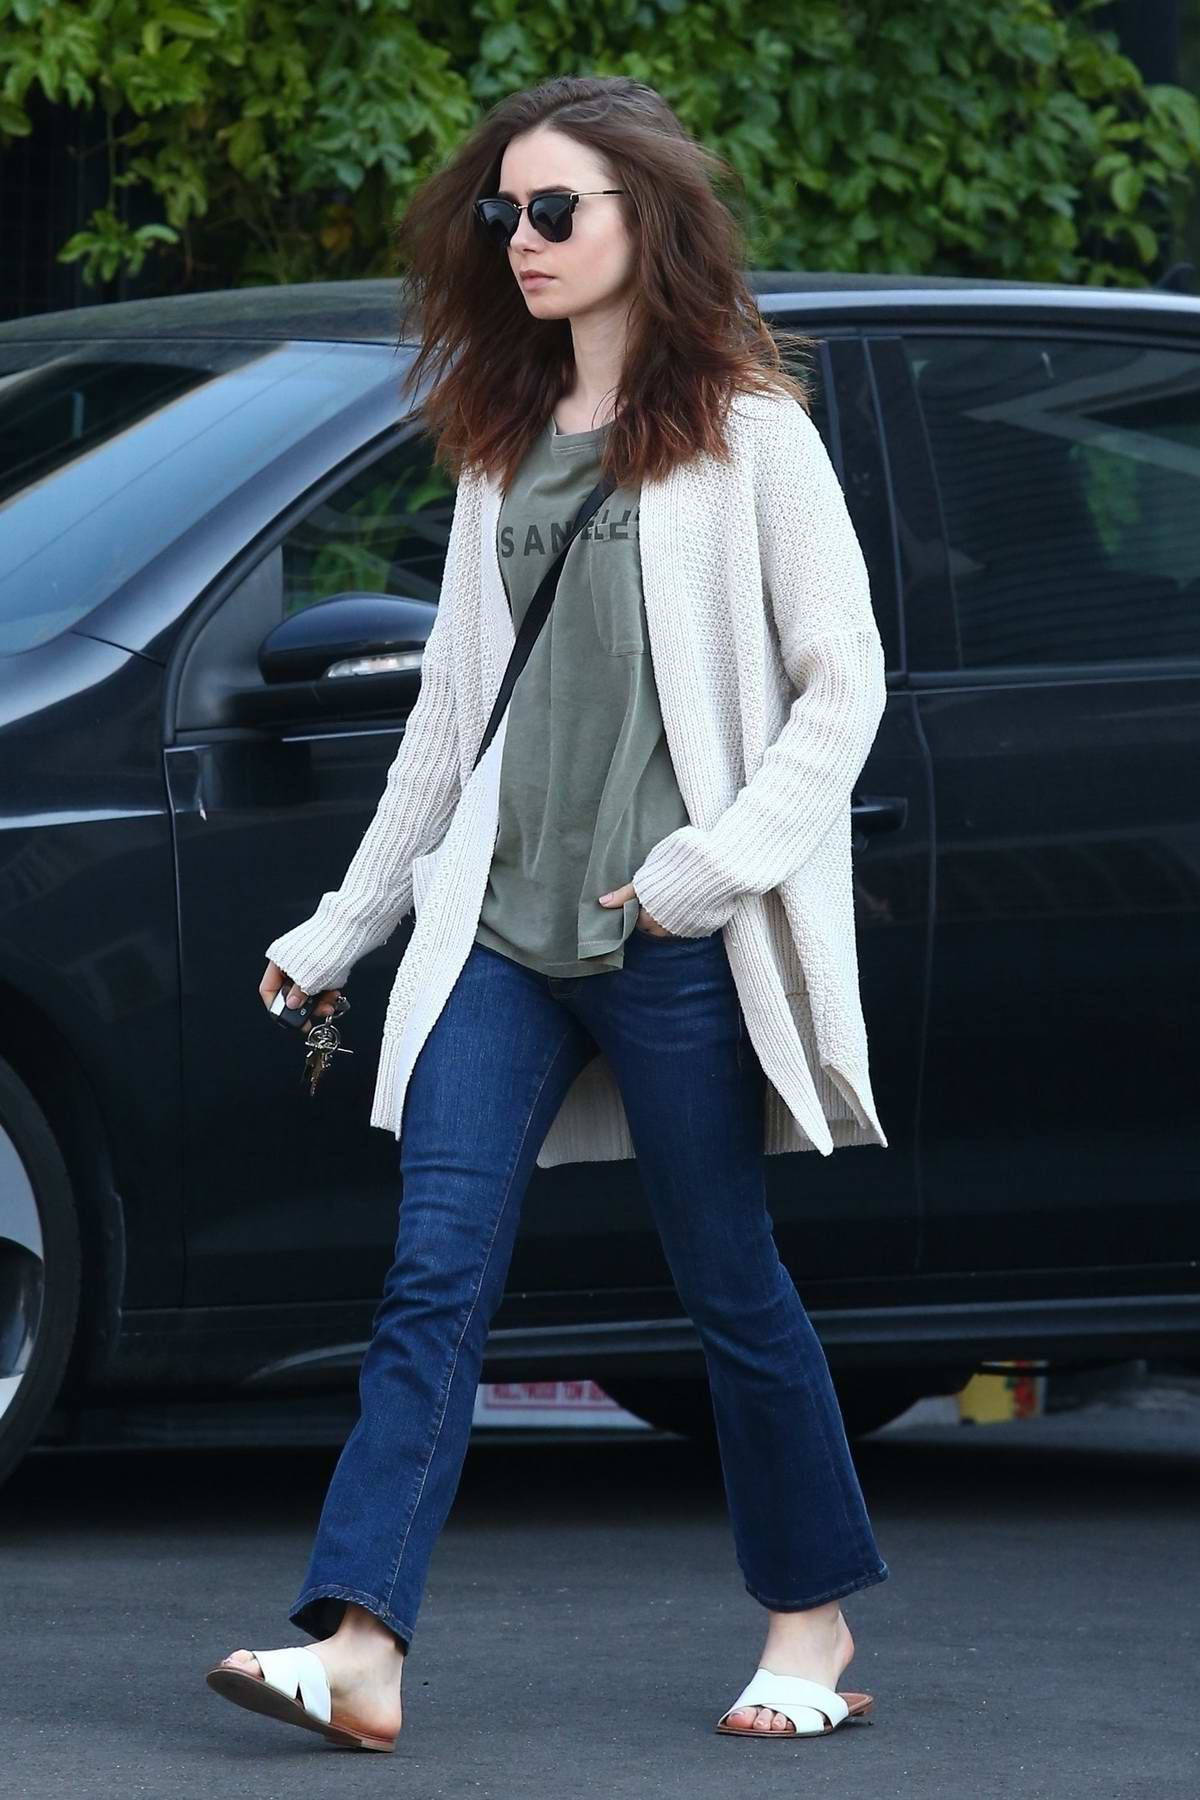 Lily Collins wearing jeans and cardigan over a green t-shirt while running some errands in Hollywood, Los Angeles